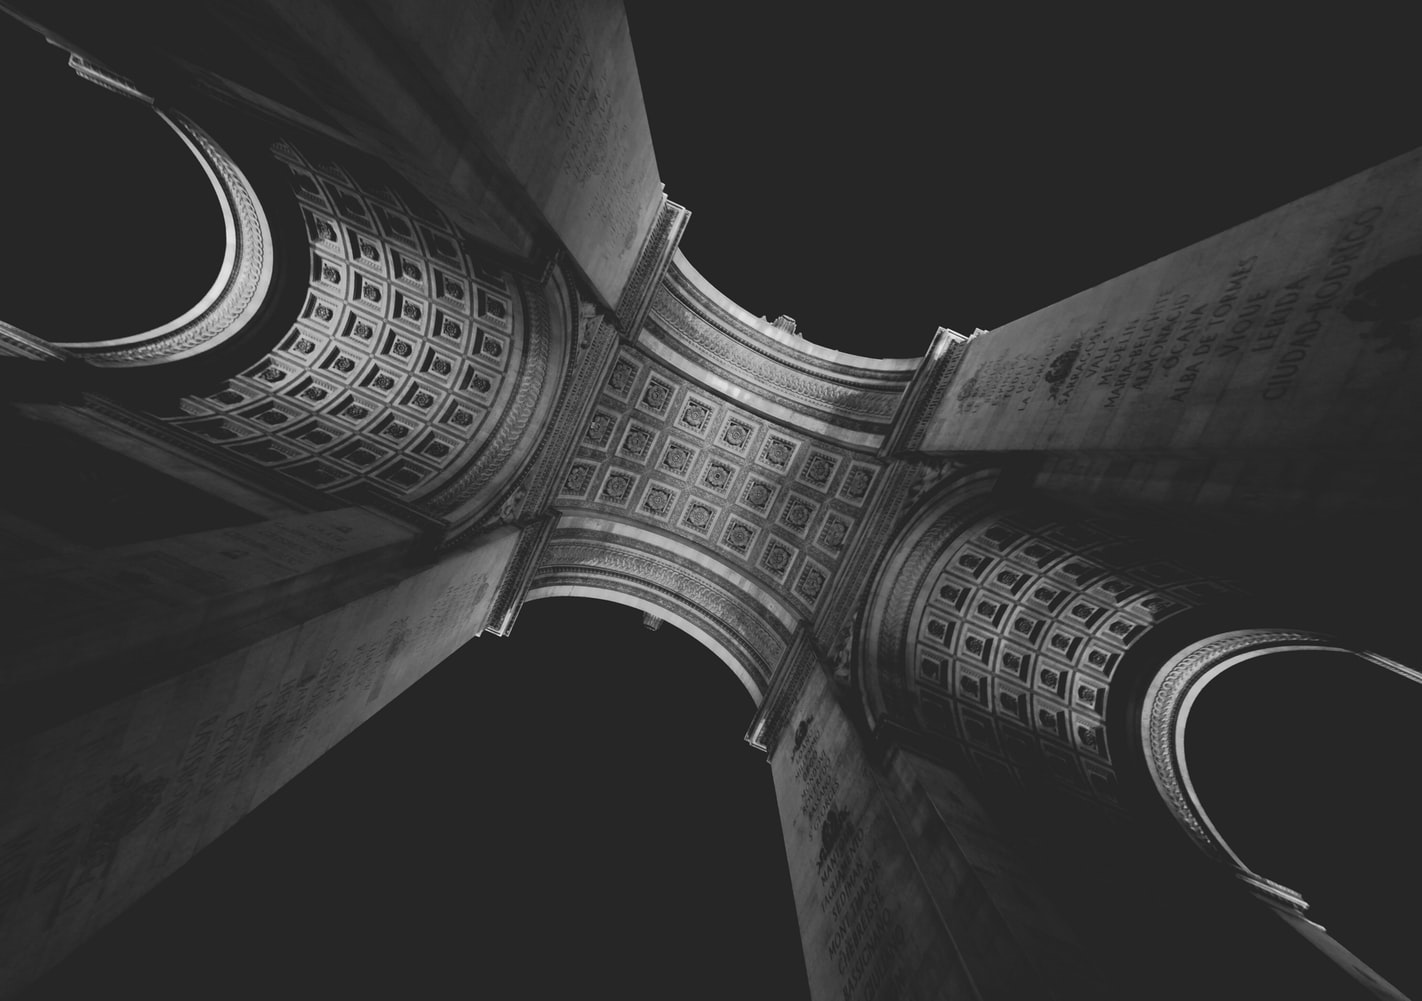 L'Arc de Triomphe in Paris photographed from below